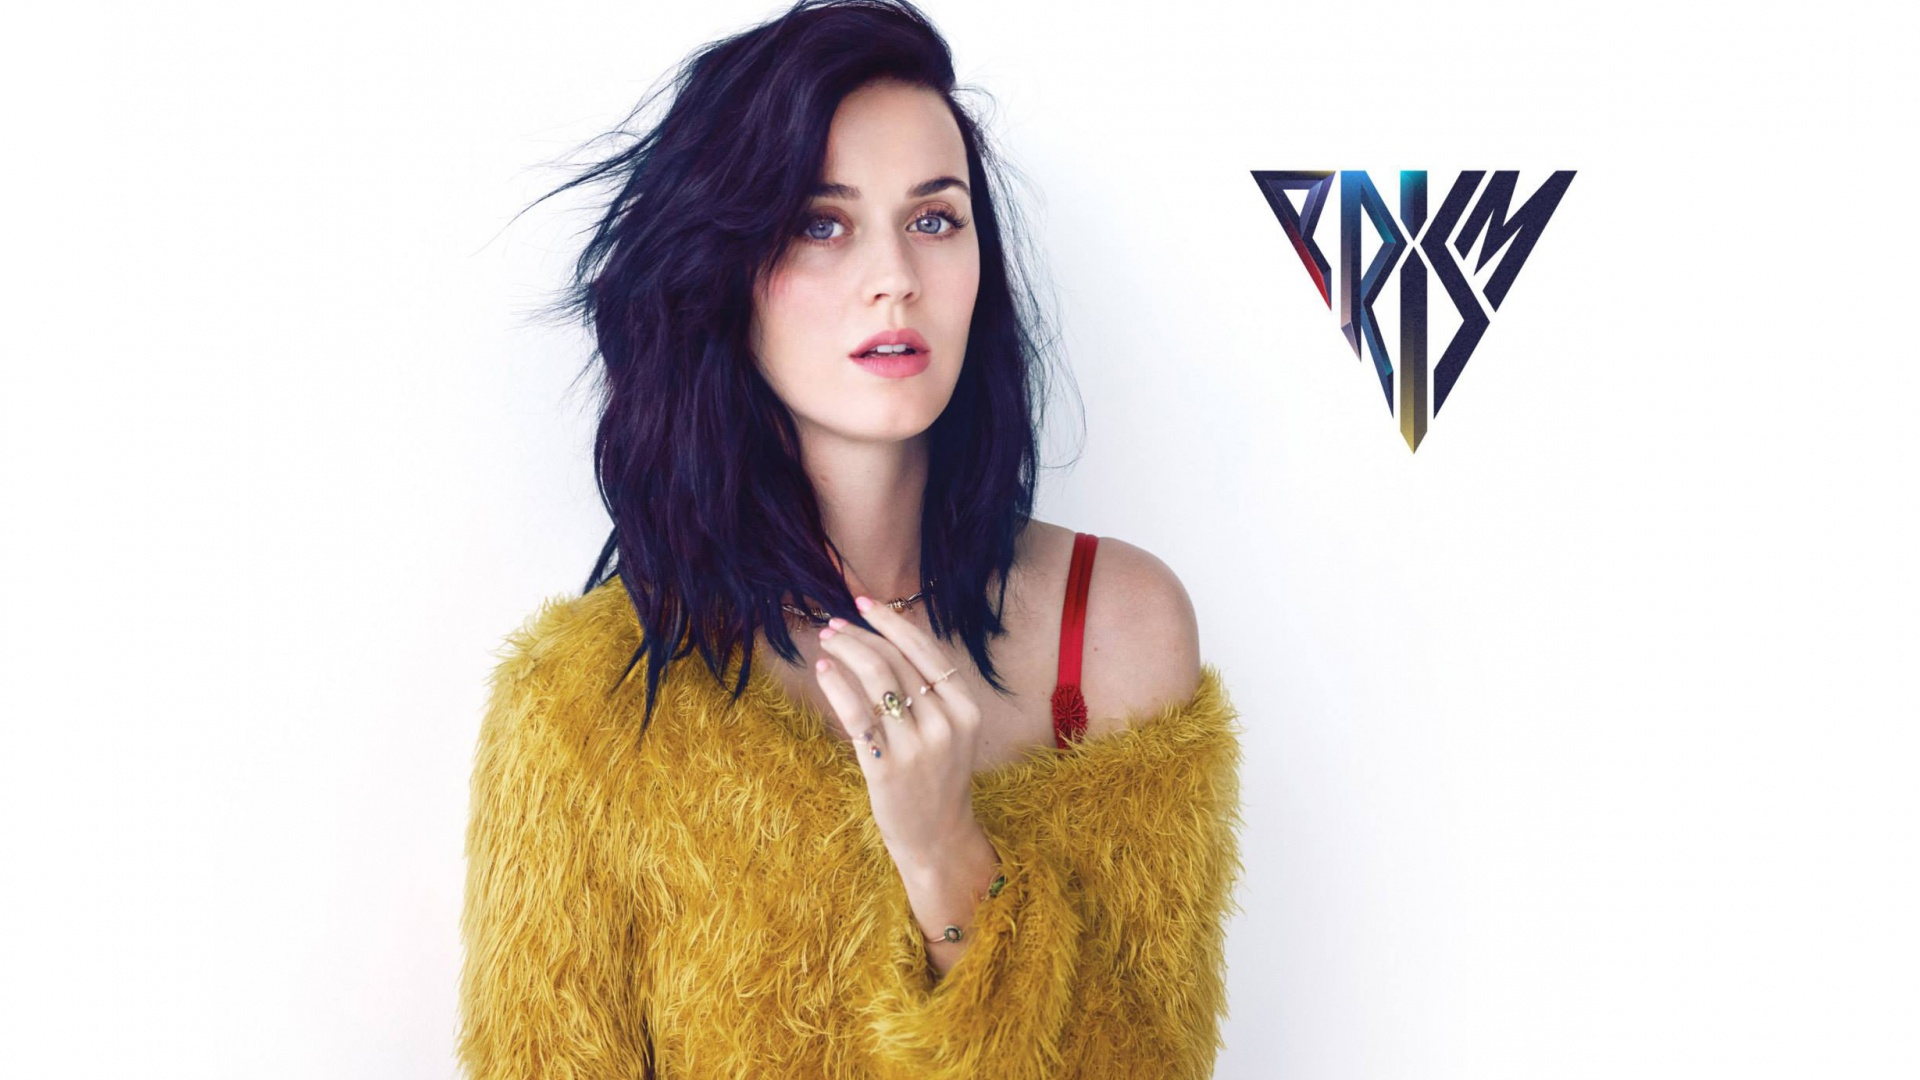 Katy Perry - Prism wallpaper | 1920x1080 | 181305 ...